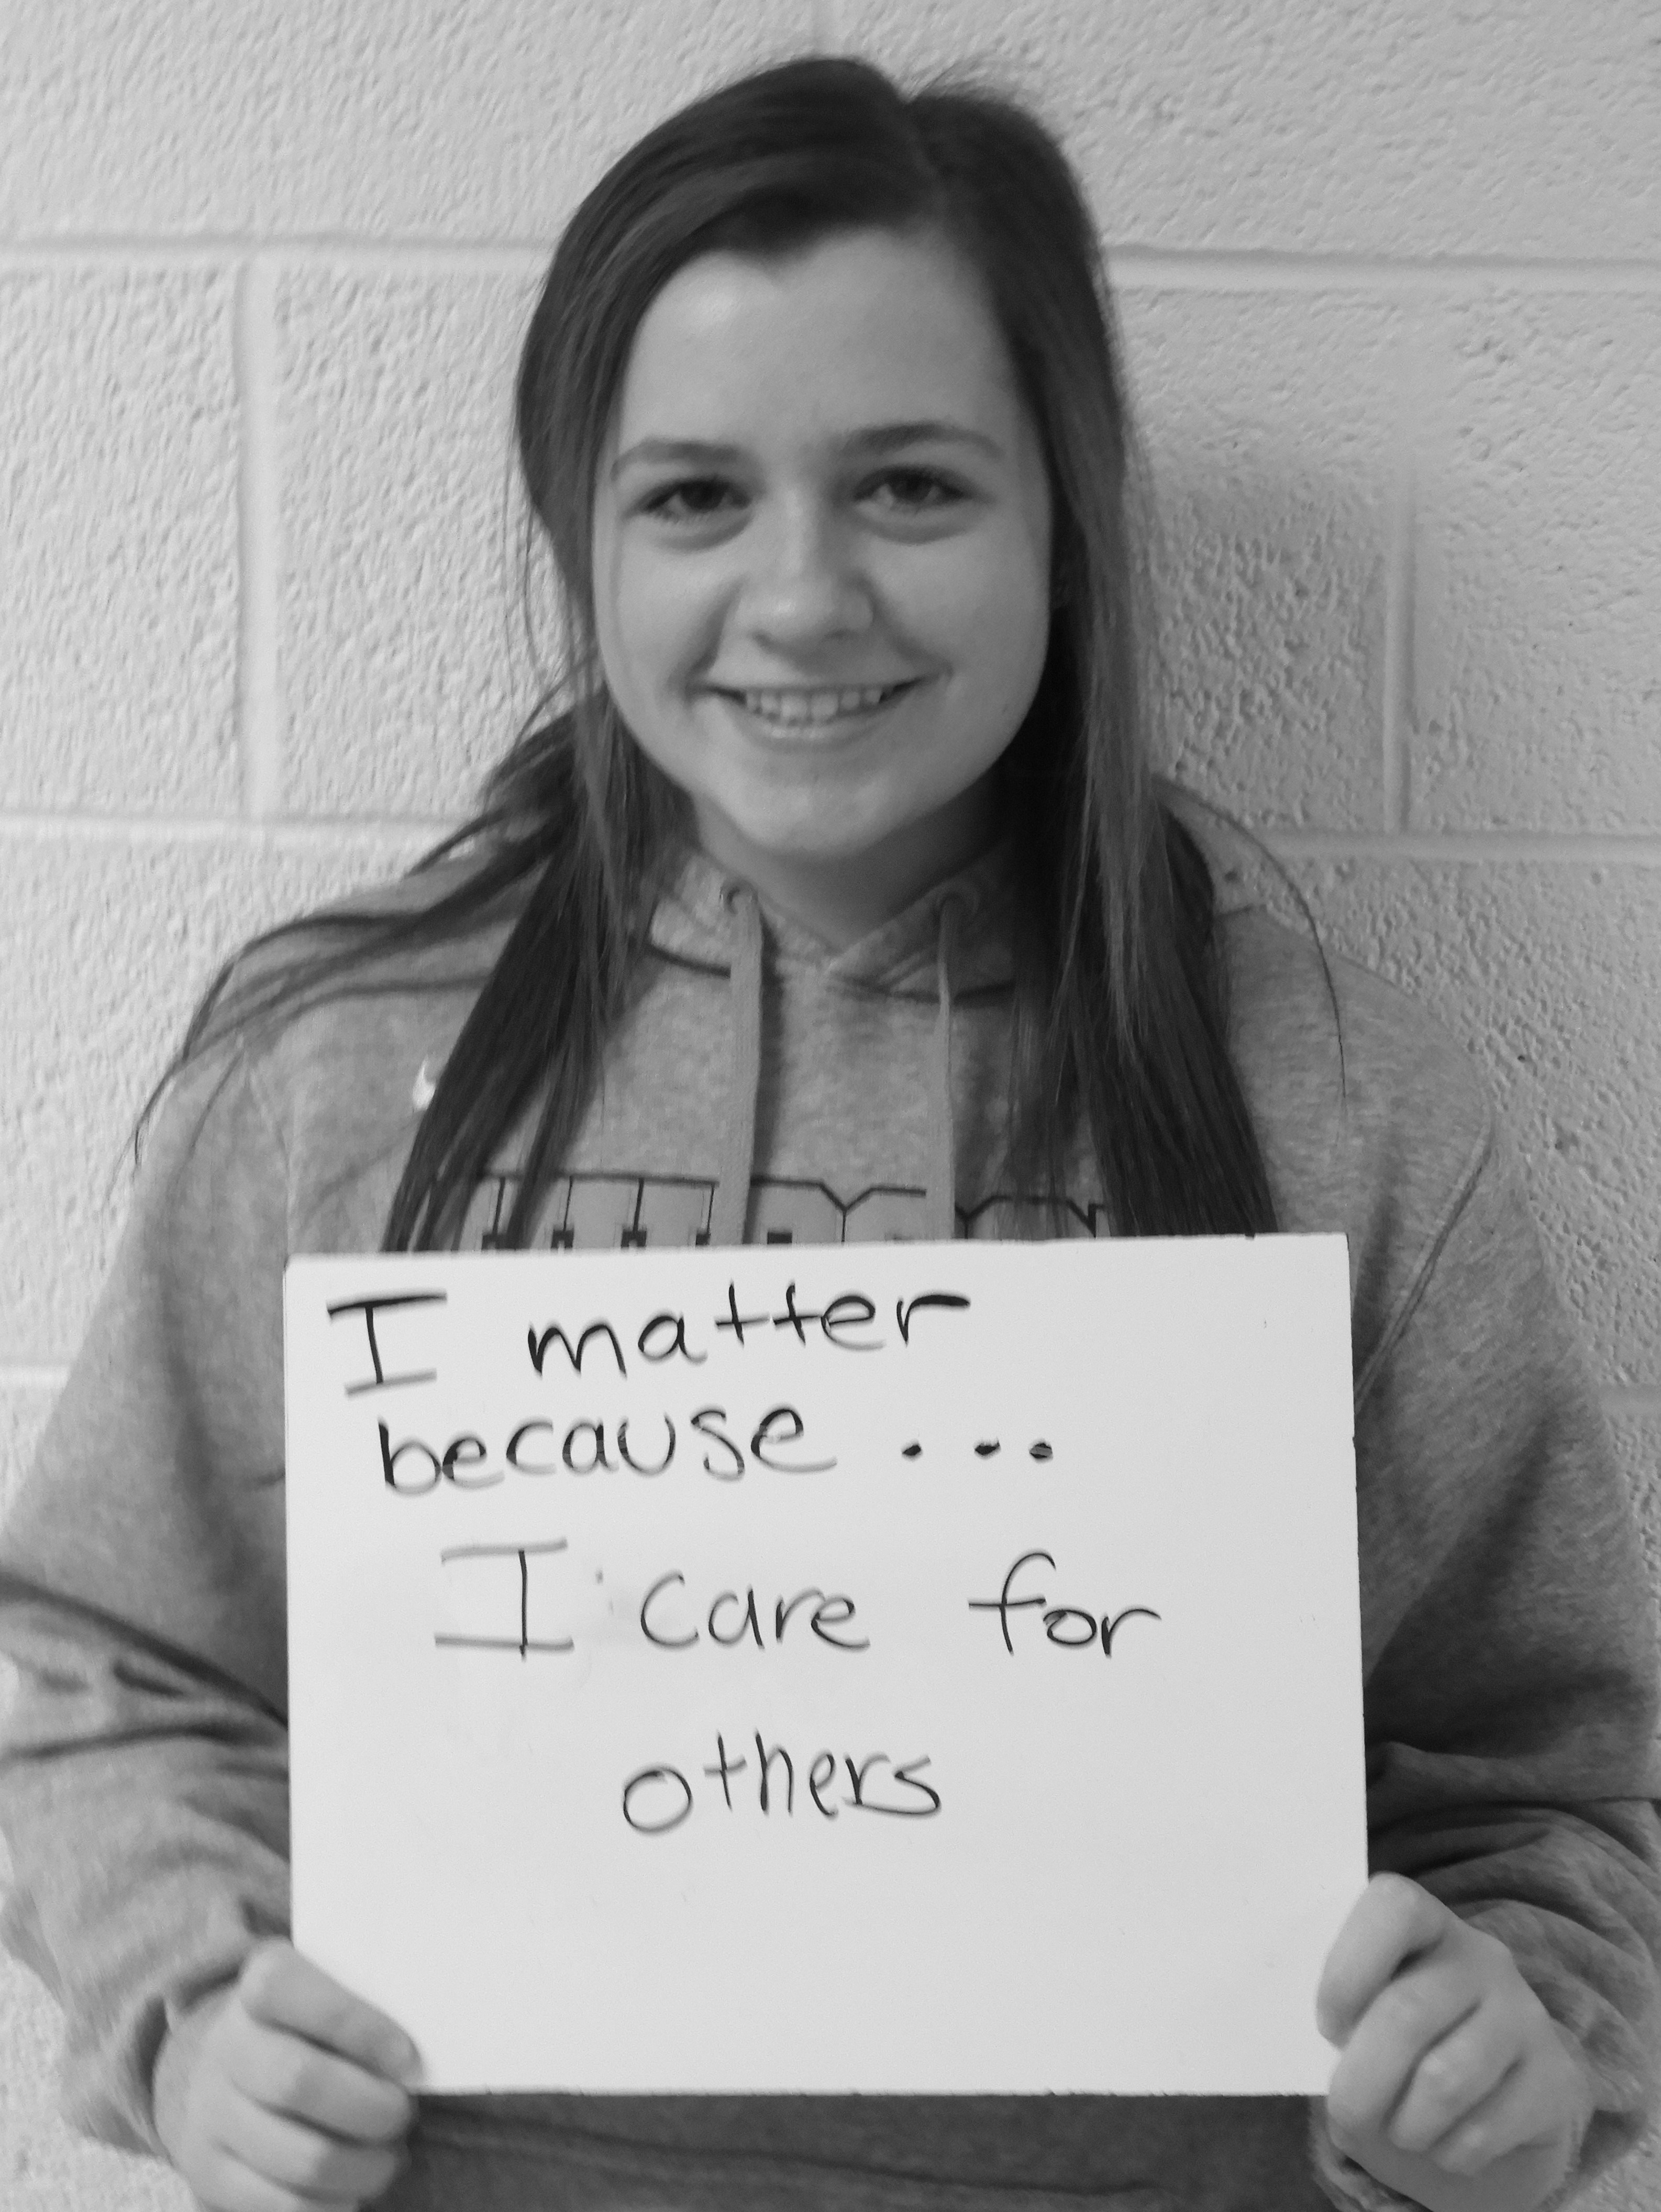 I matter because...I care for others